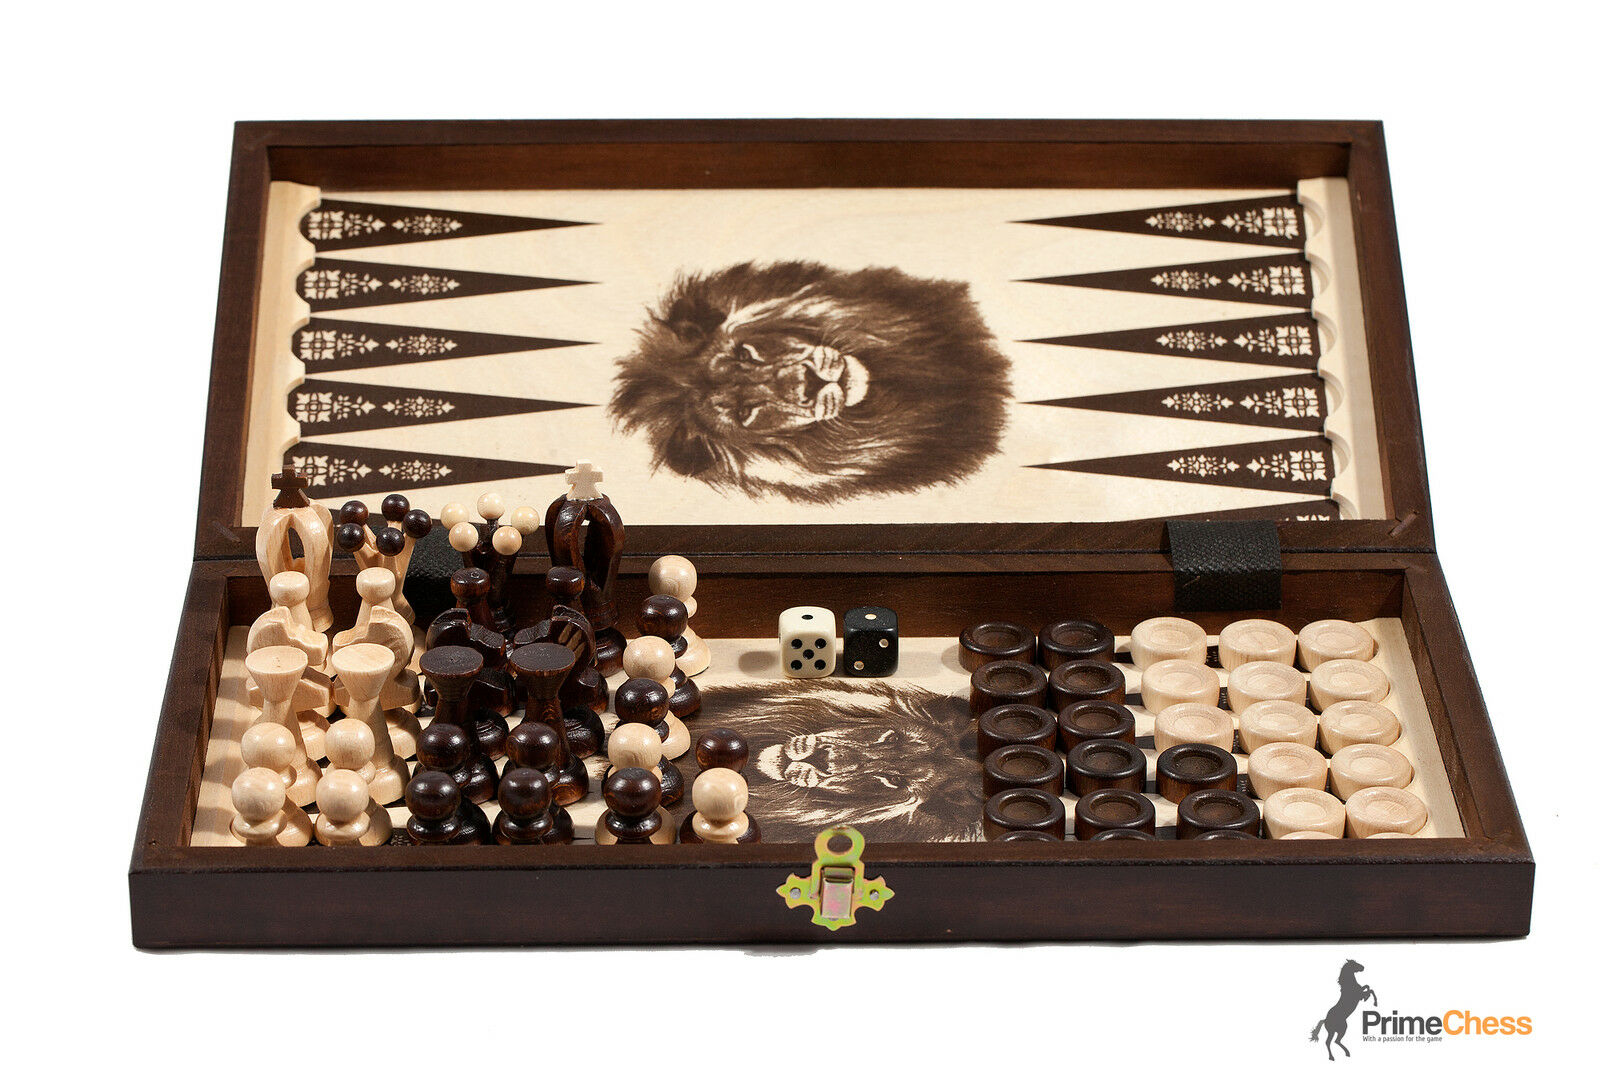 THE KINGDOM Wooden Chess + Backgammon + Draughts Set 35cm STUNNING HAND CRAFTED!